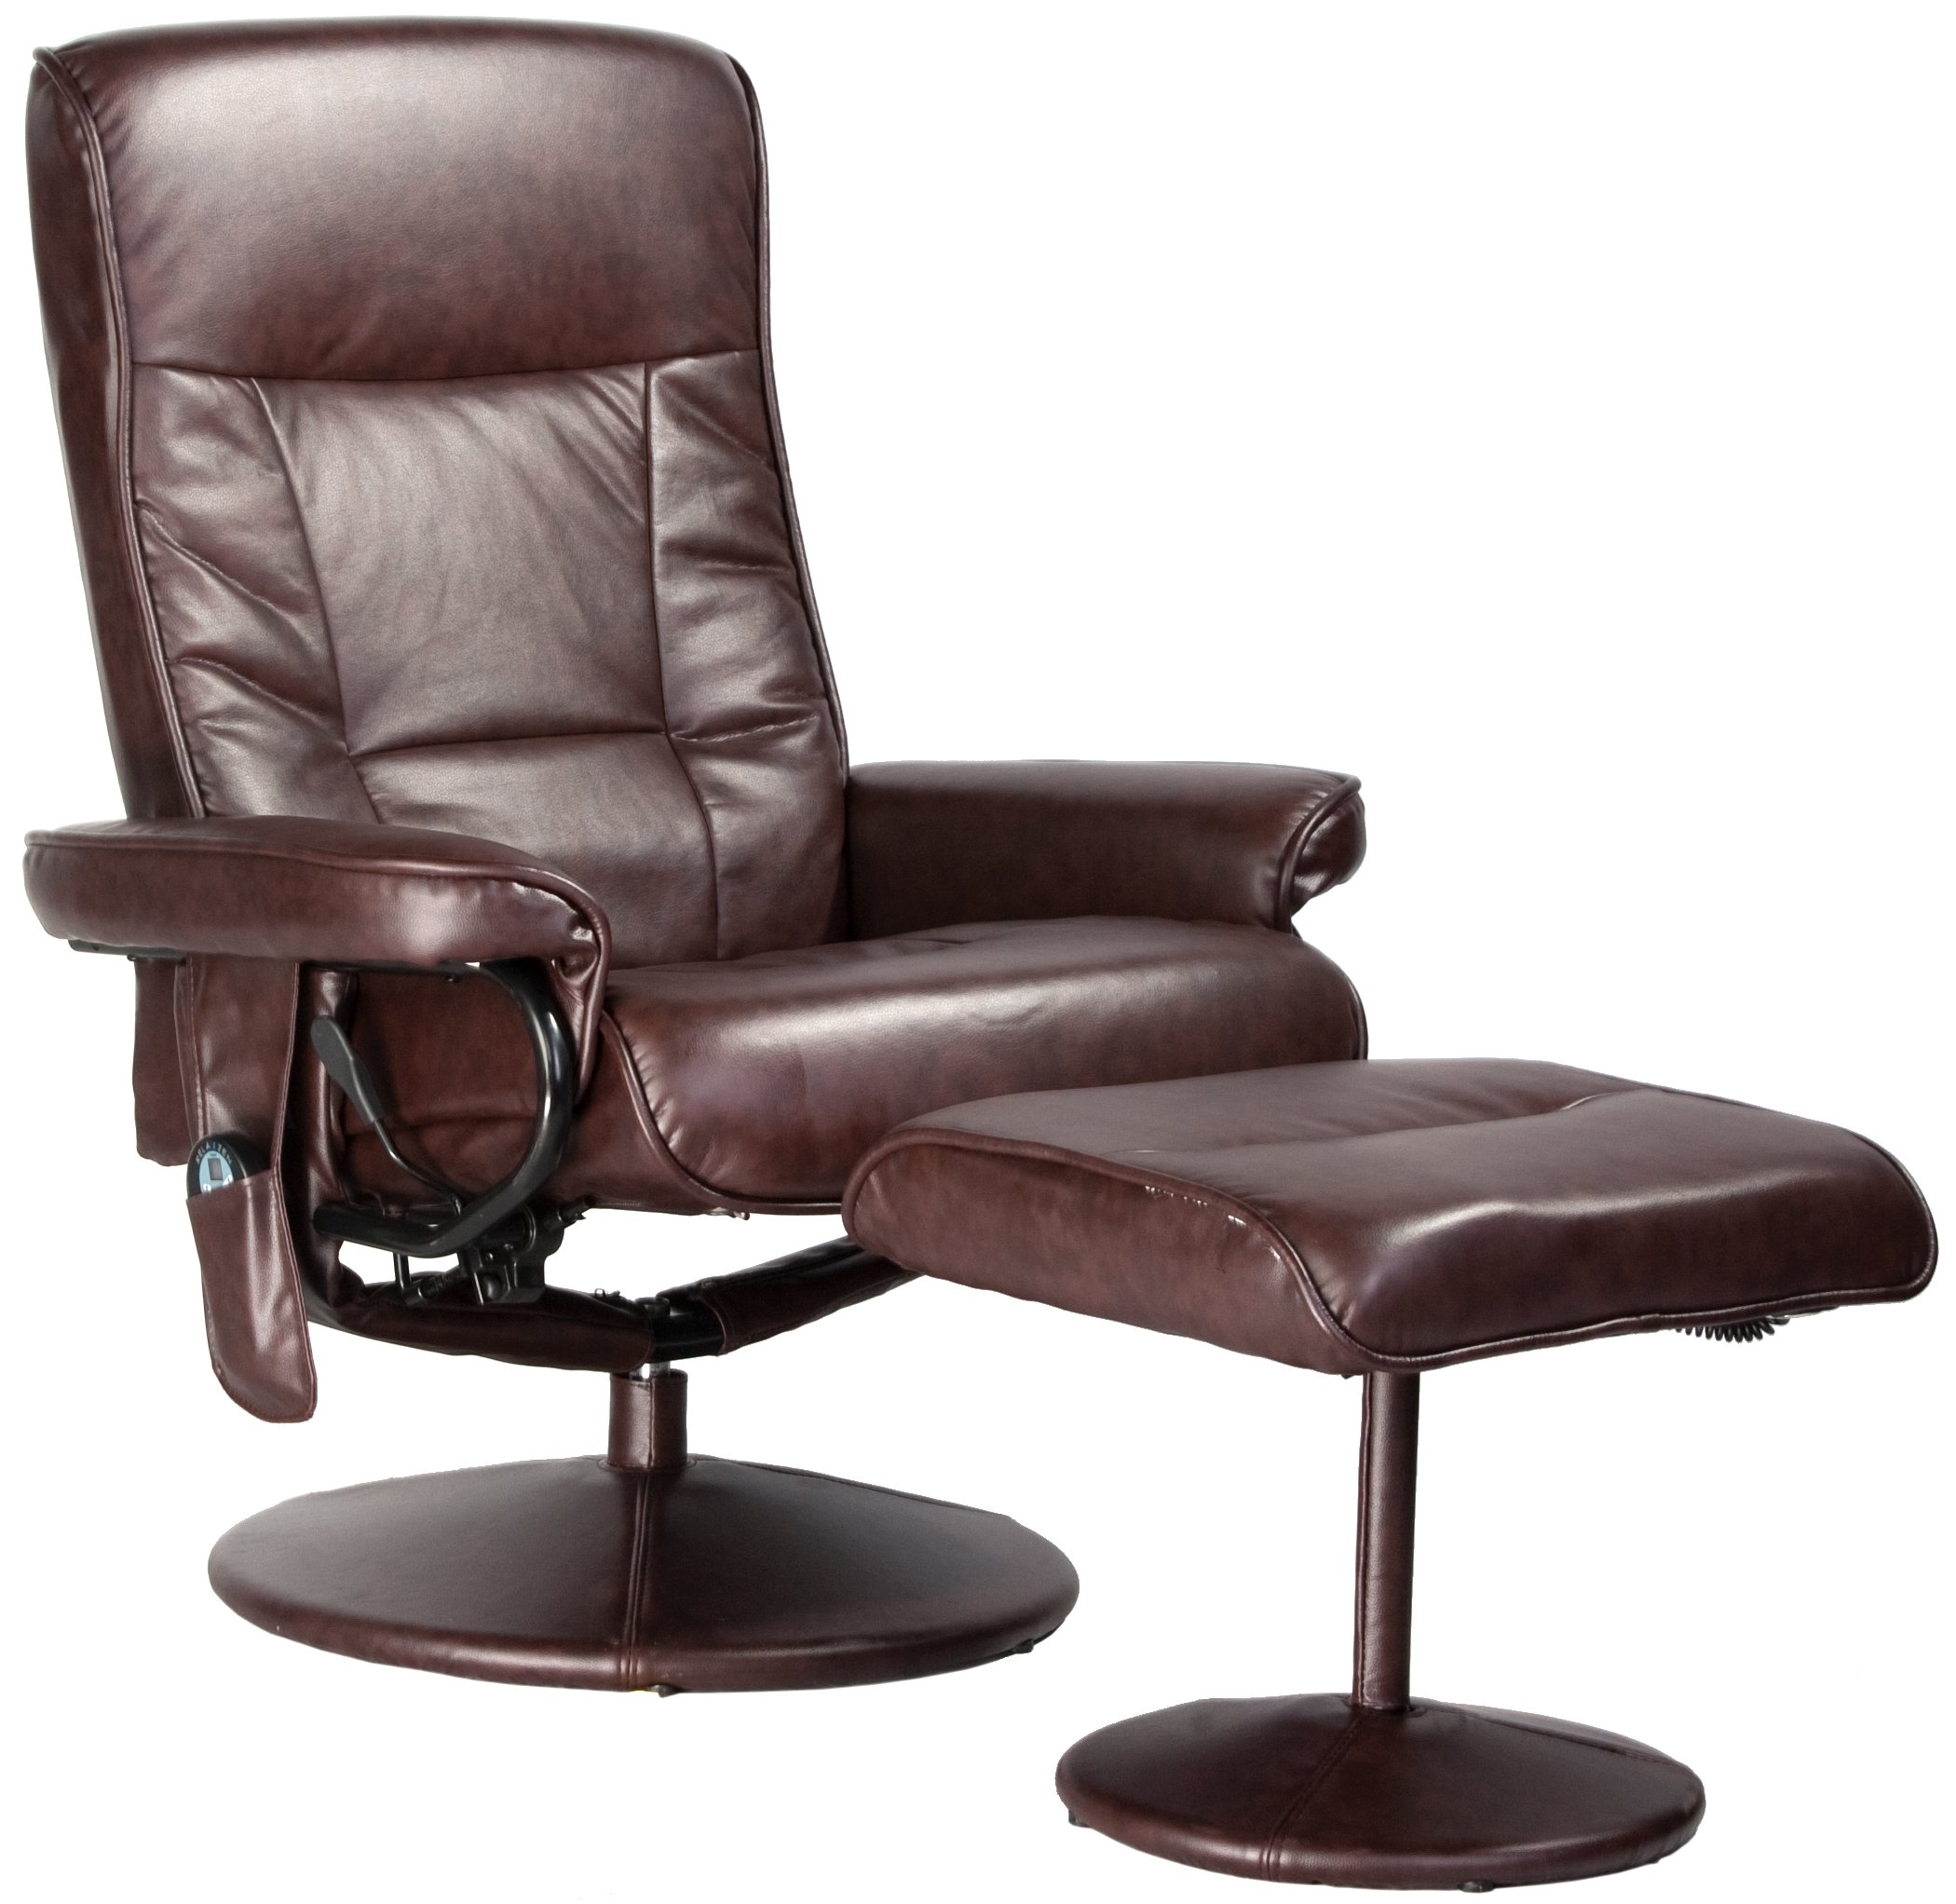 Best Massage Chair reviews - Comfort Products 60-425111 Leisure Recliner Chair with 8-Motor Massage